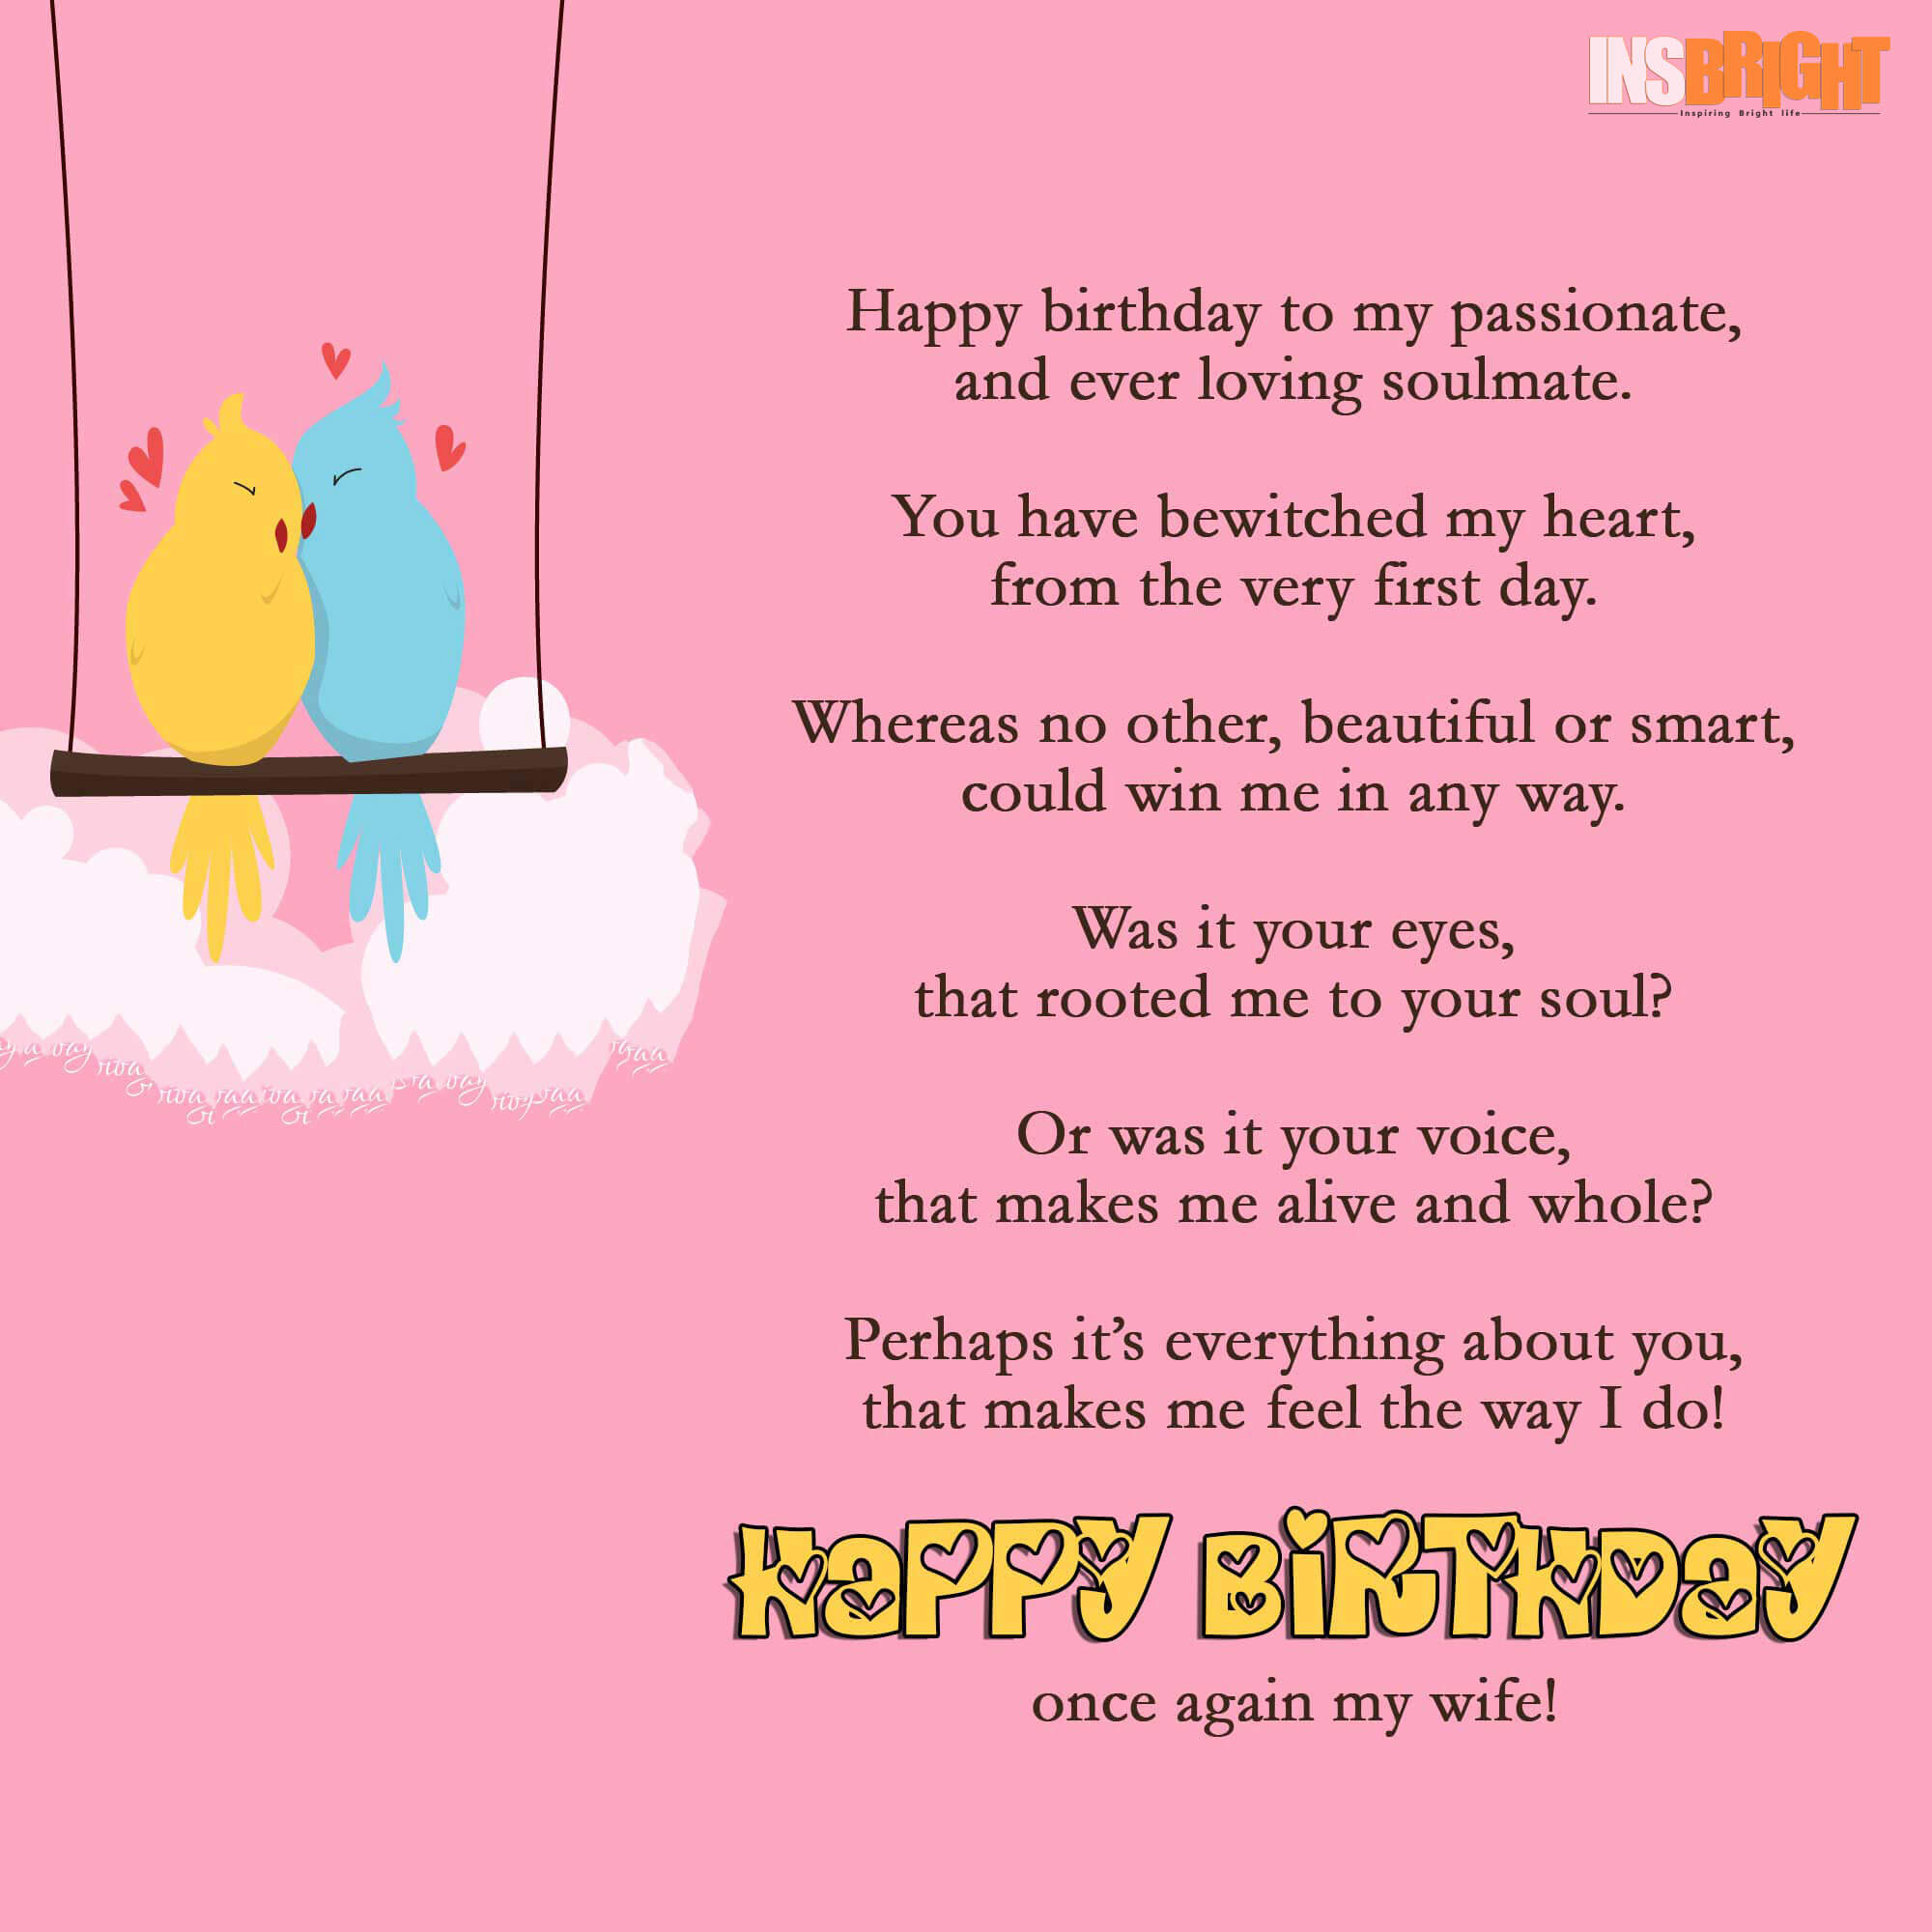 Happy birthday to my soulmate poem